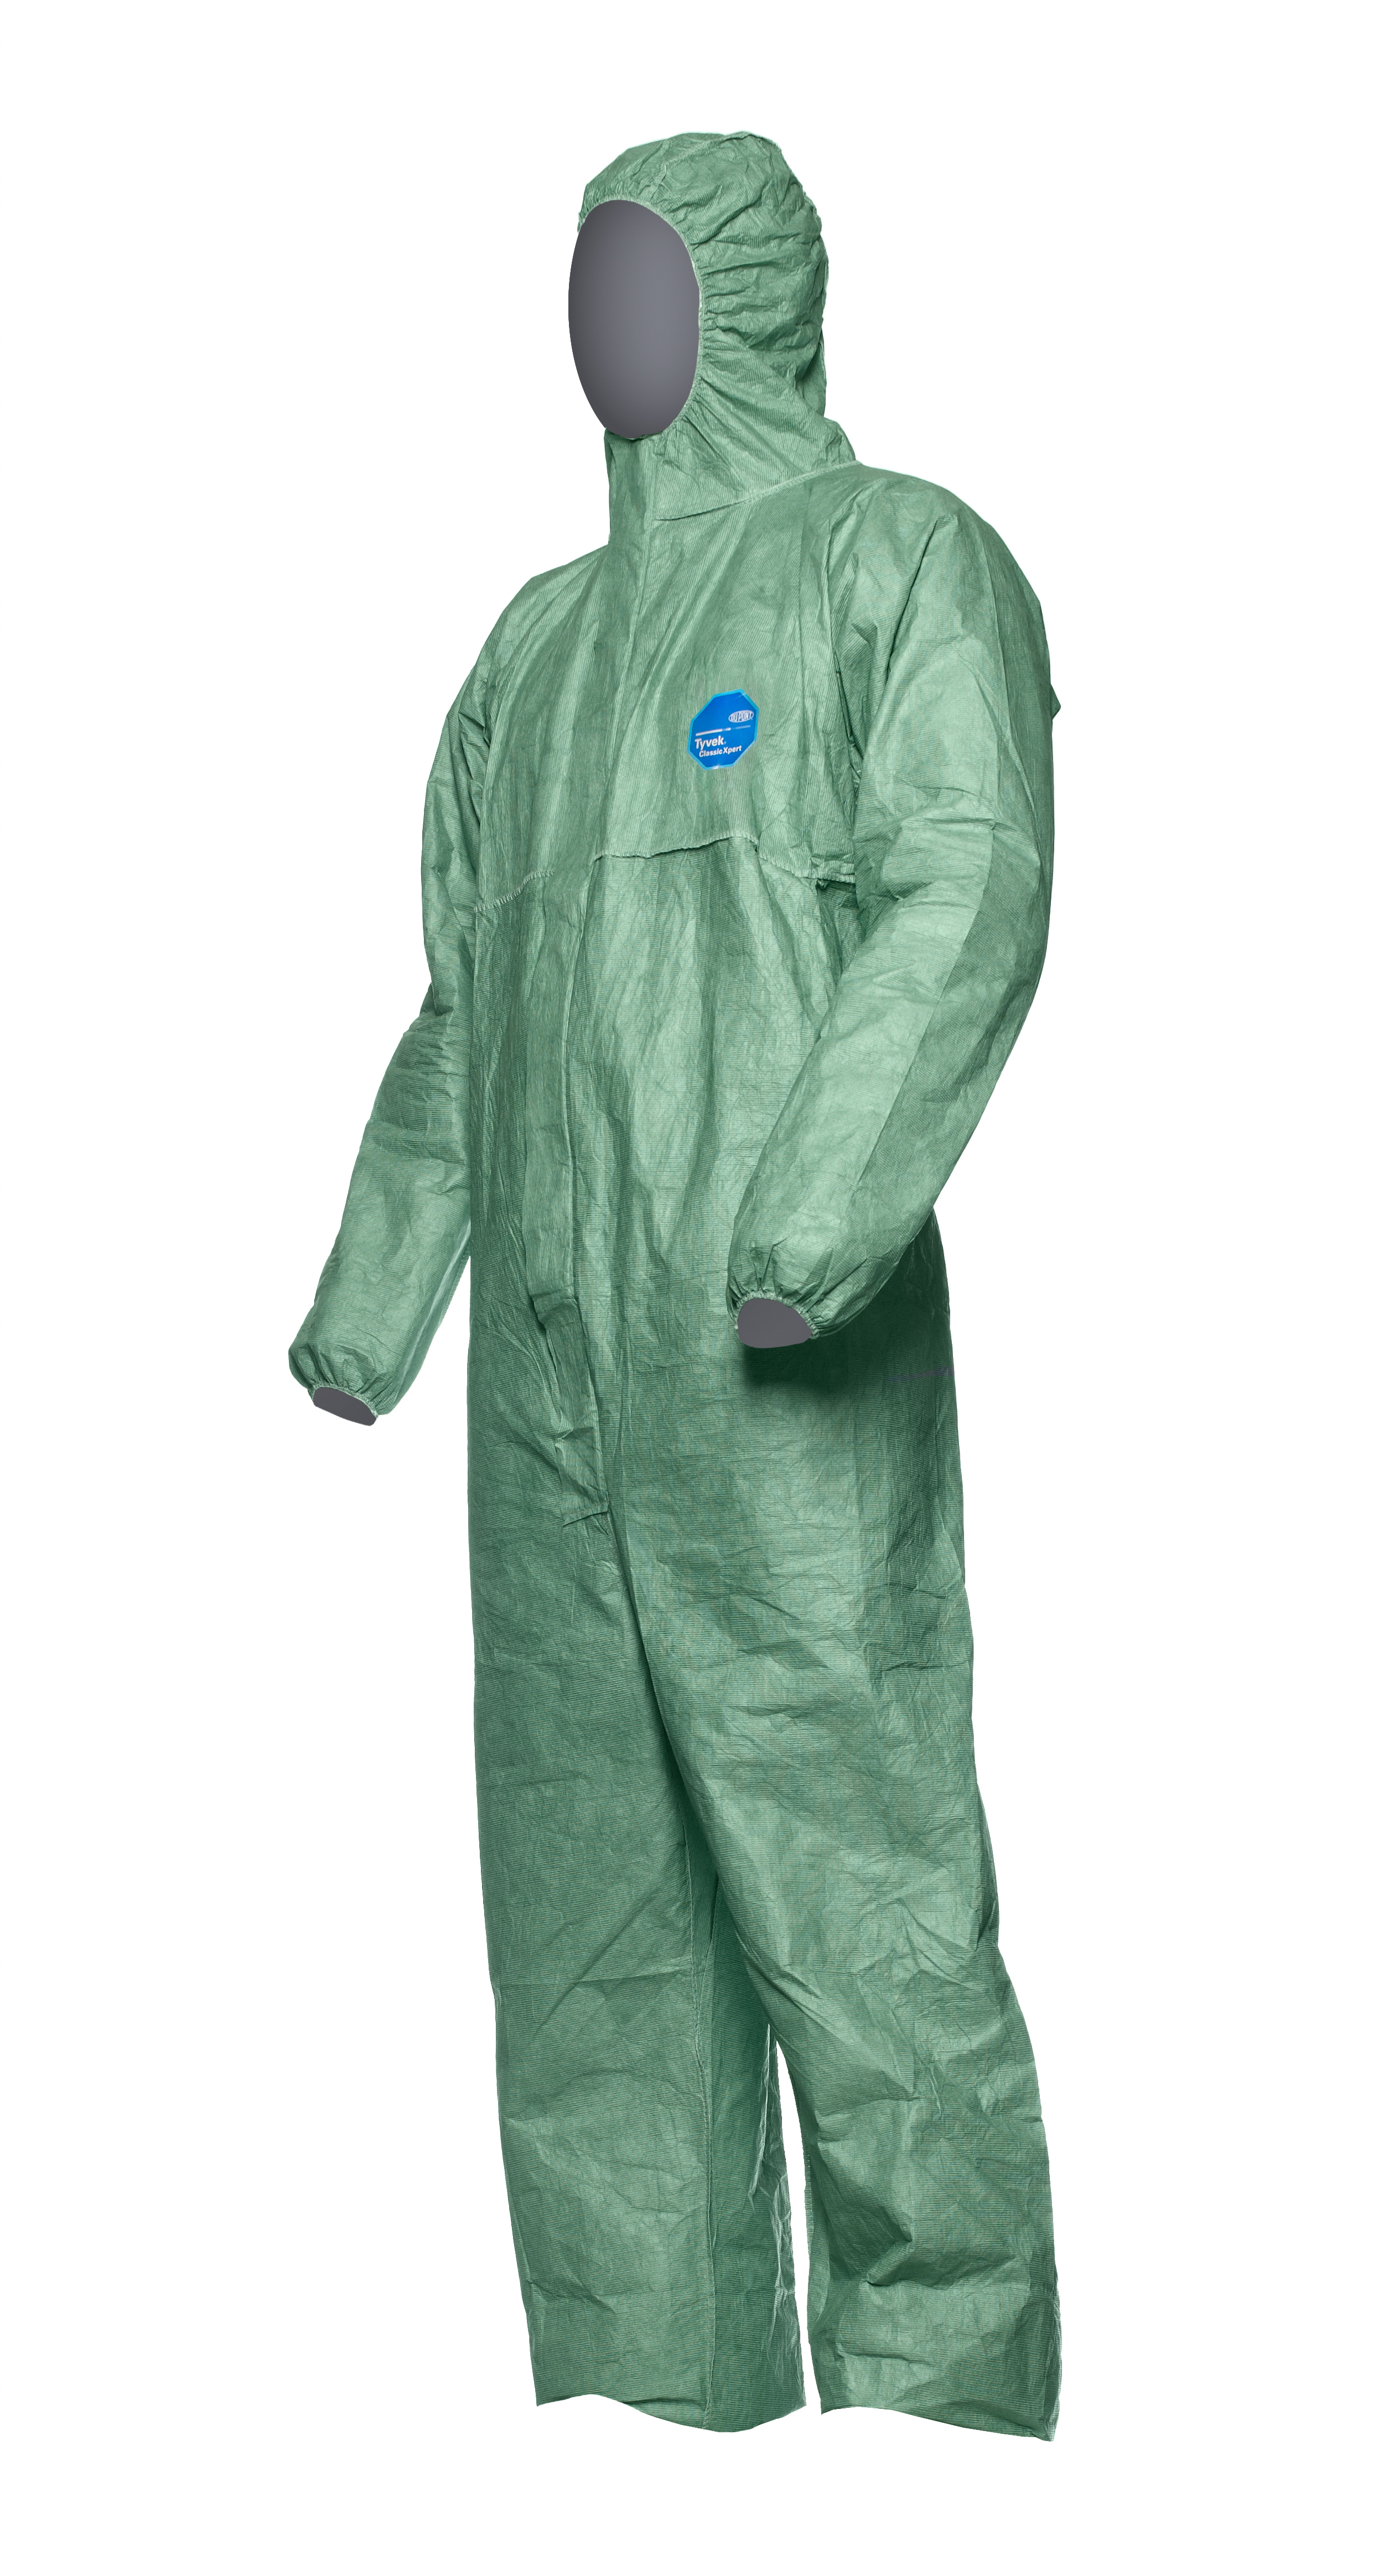 Dupont Tyvek Disposable Coverall - Classic Xpert Green Hooded